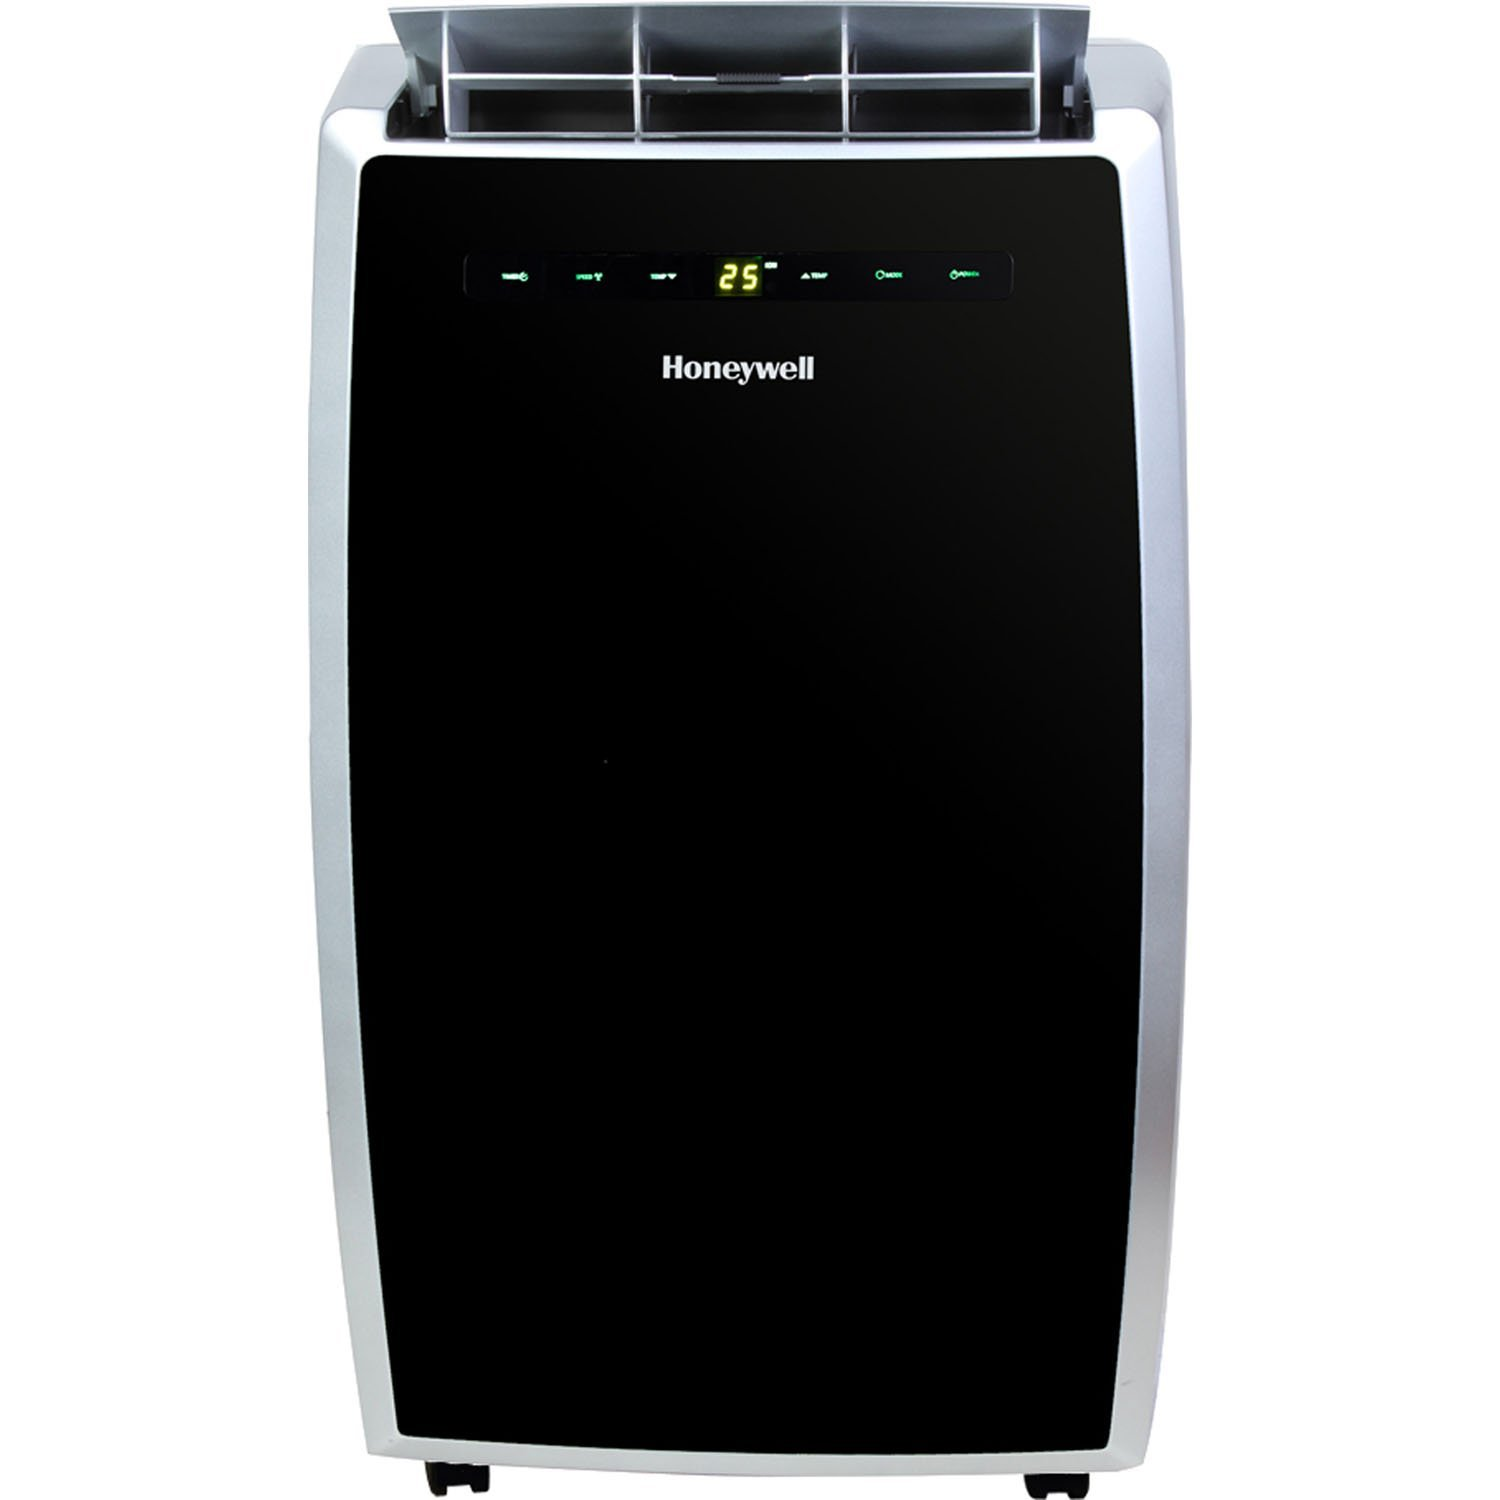 Review of Honeywell MN10CESWW Portable Air Conditioner with Dehumidifier